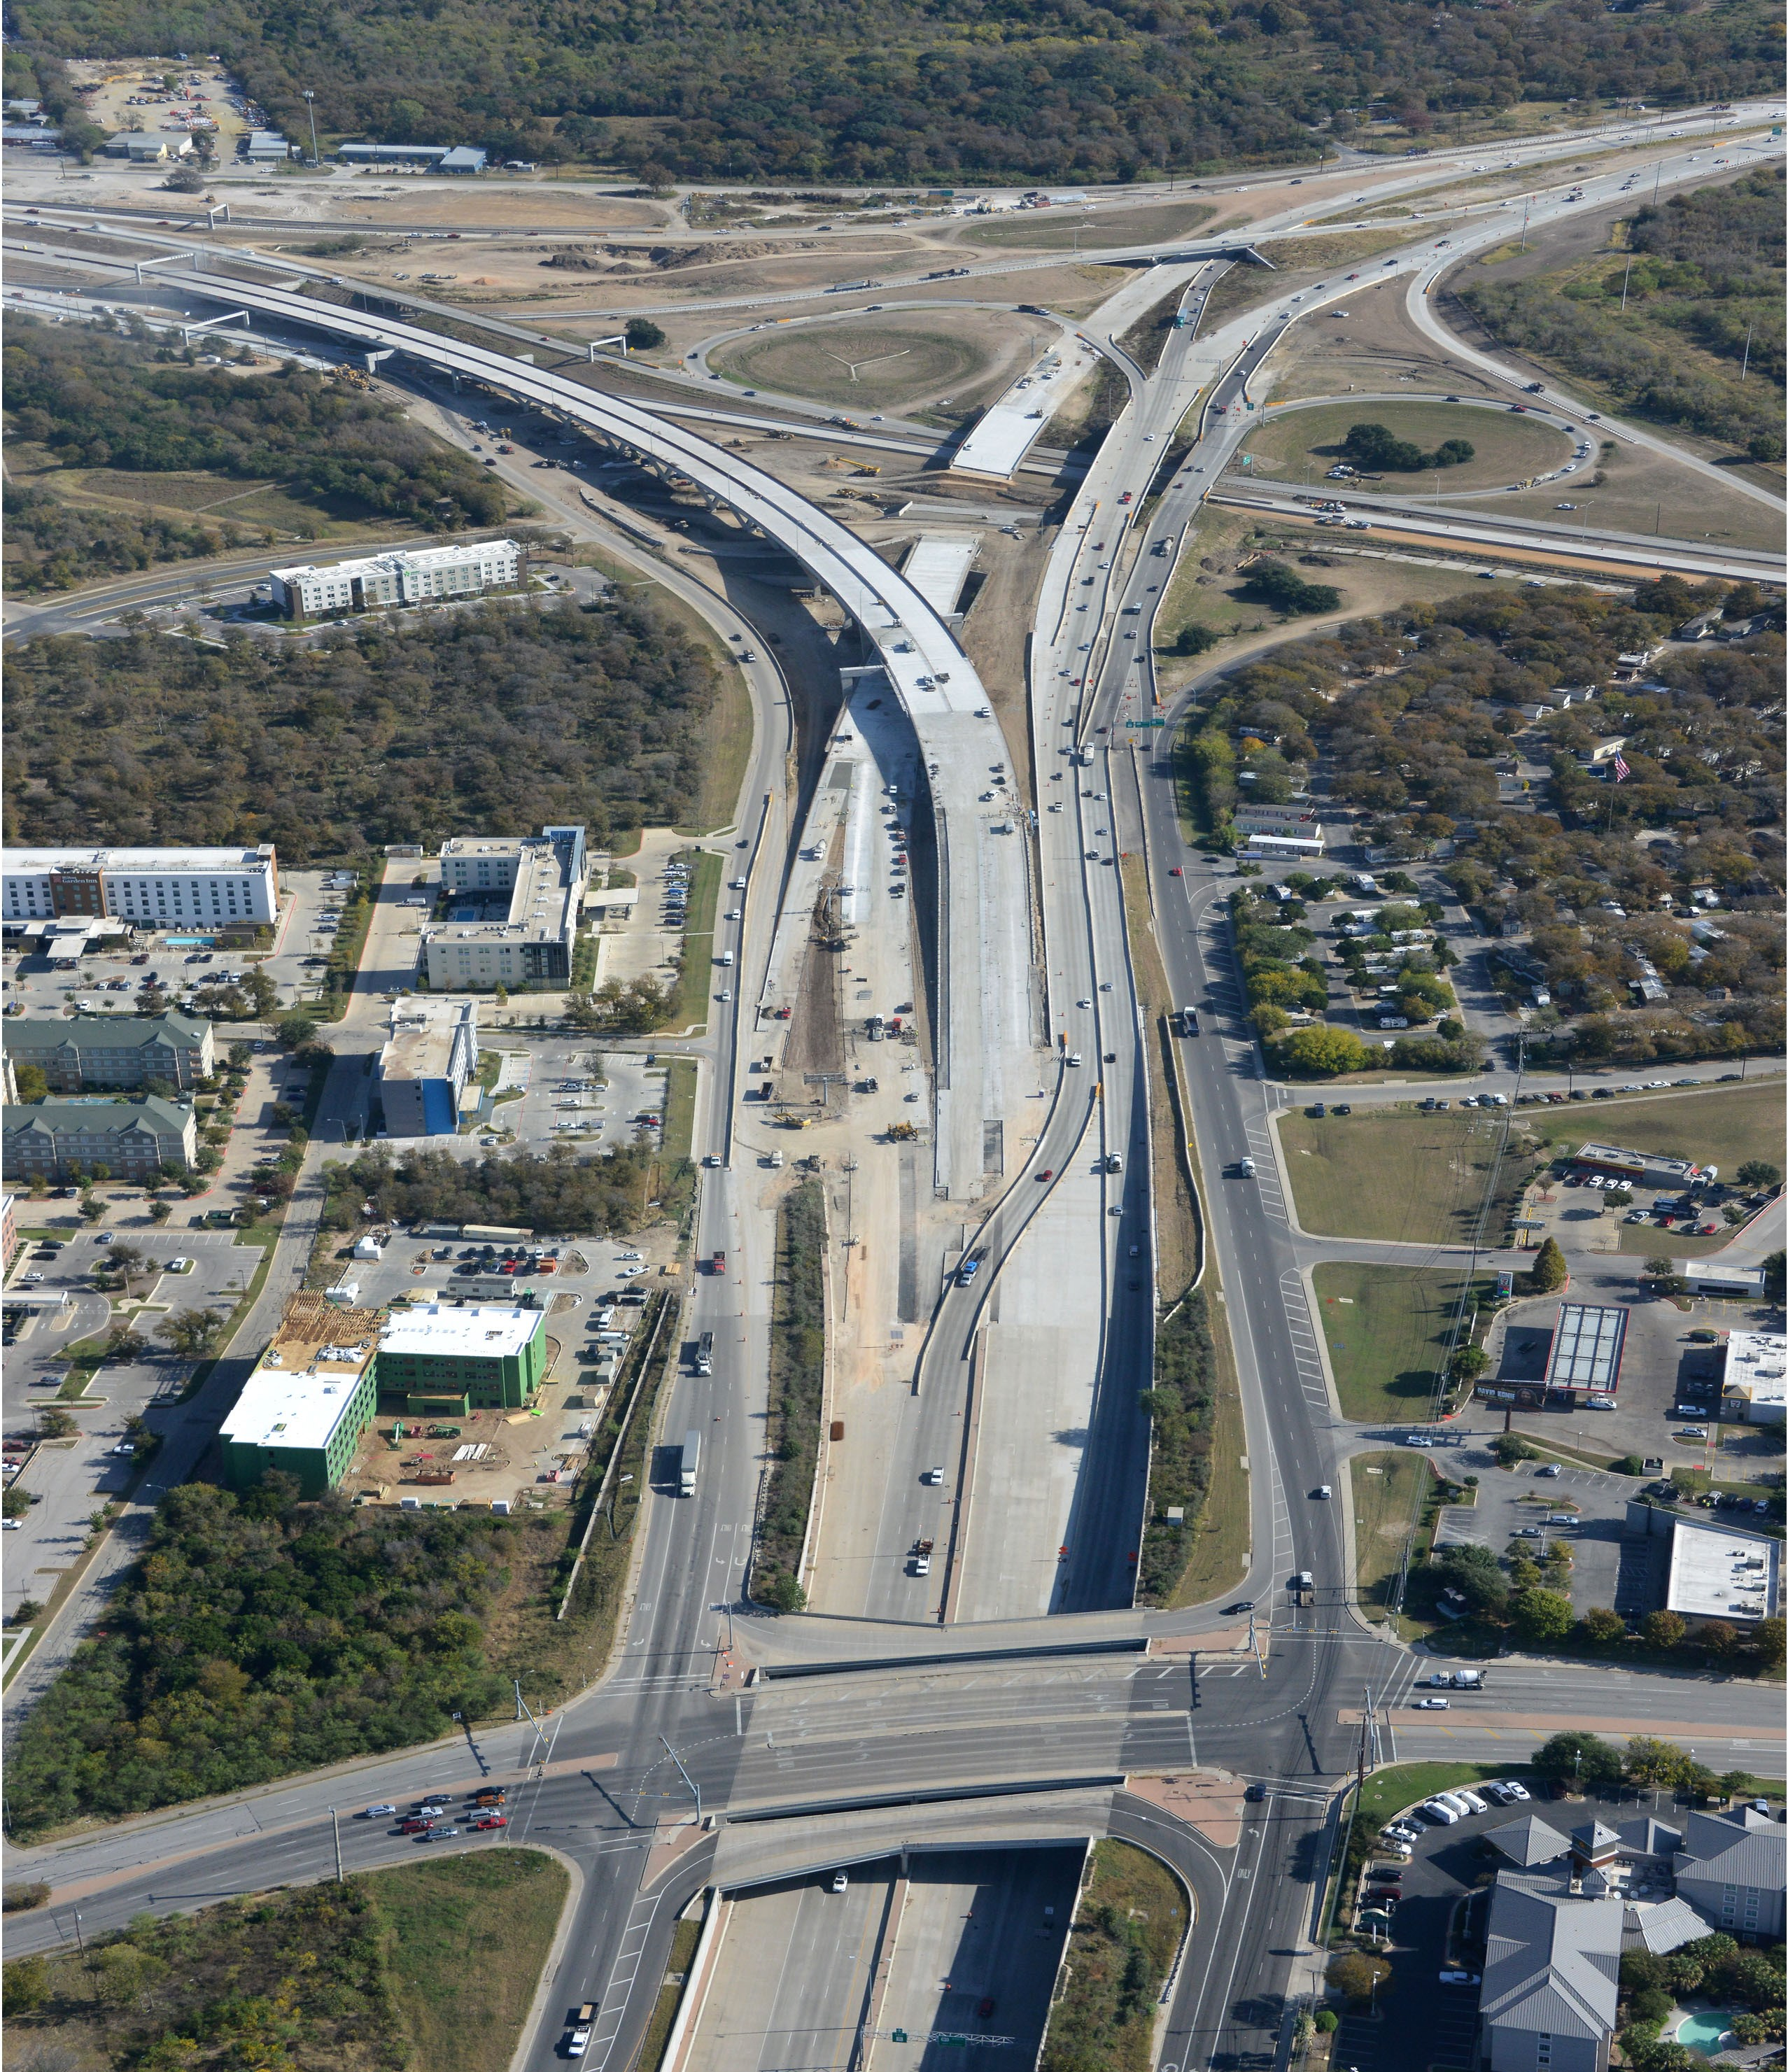 Aerial View of SH 71 at Riverside Drive - Nov. 2020